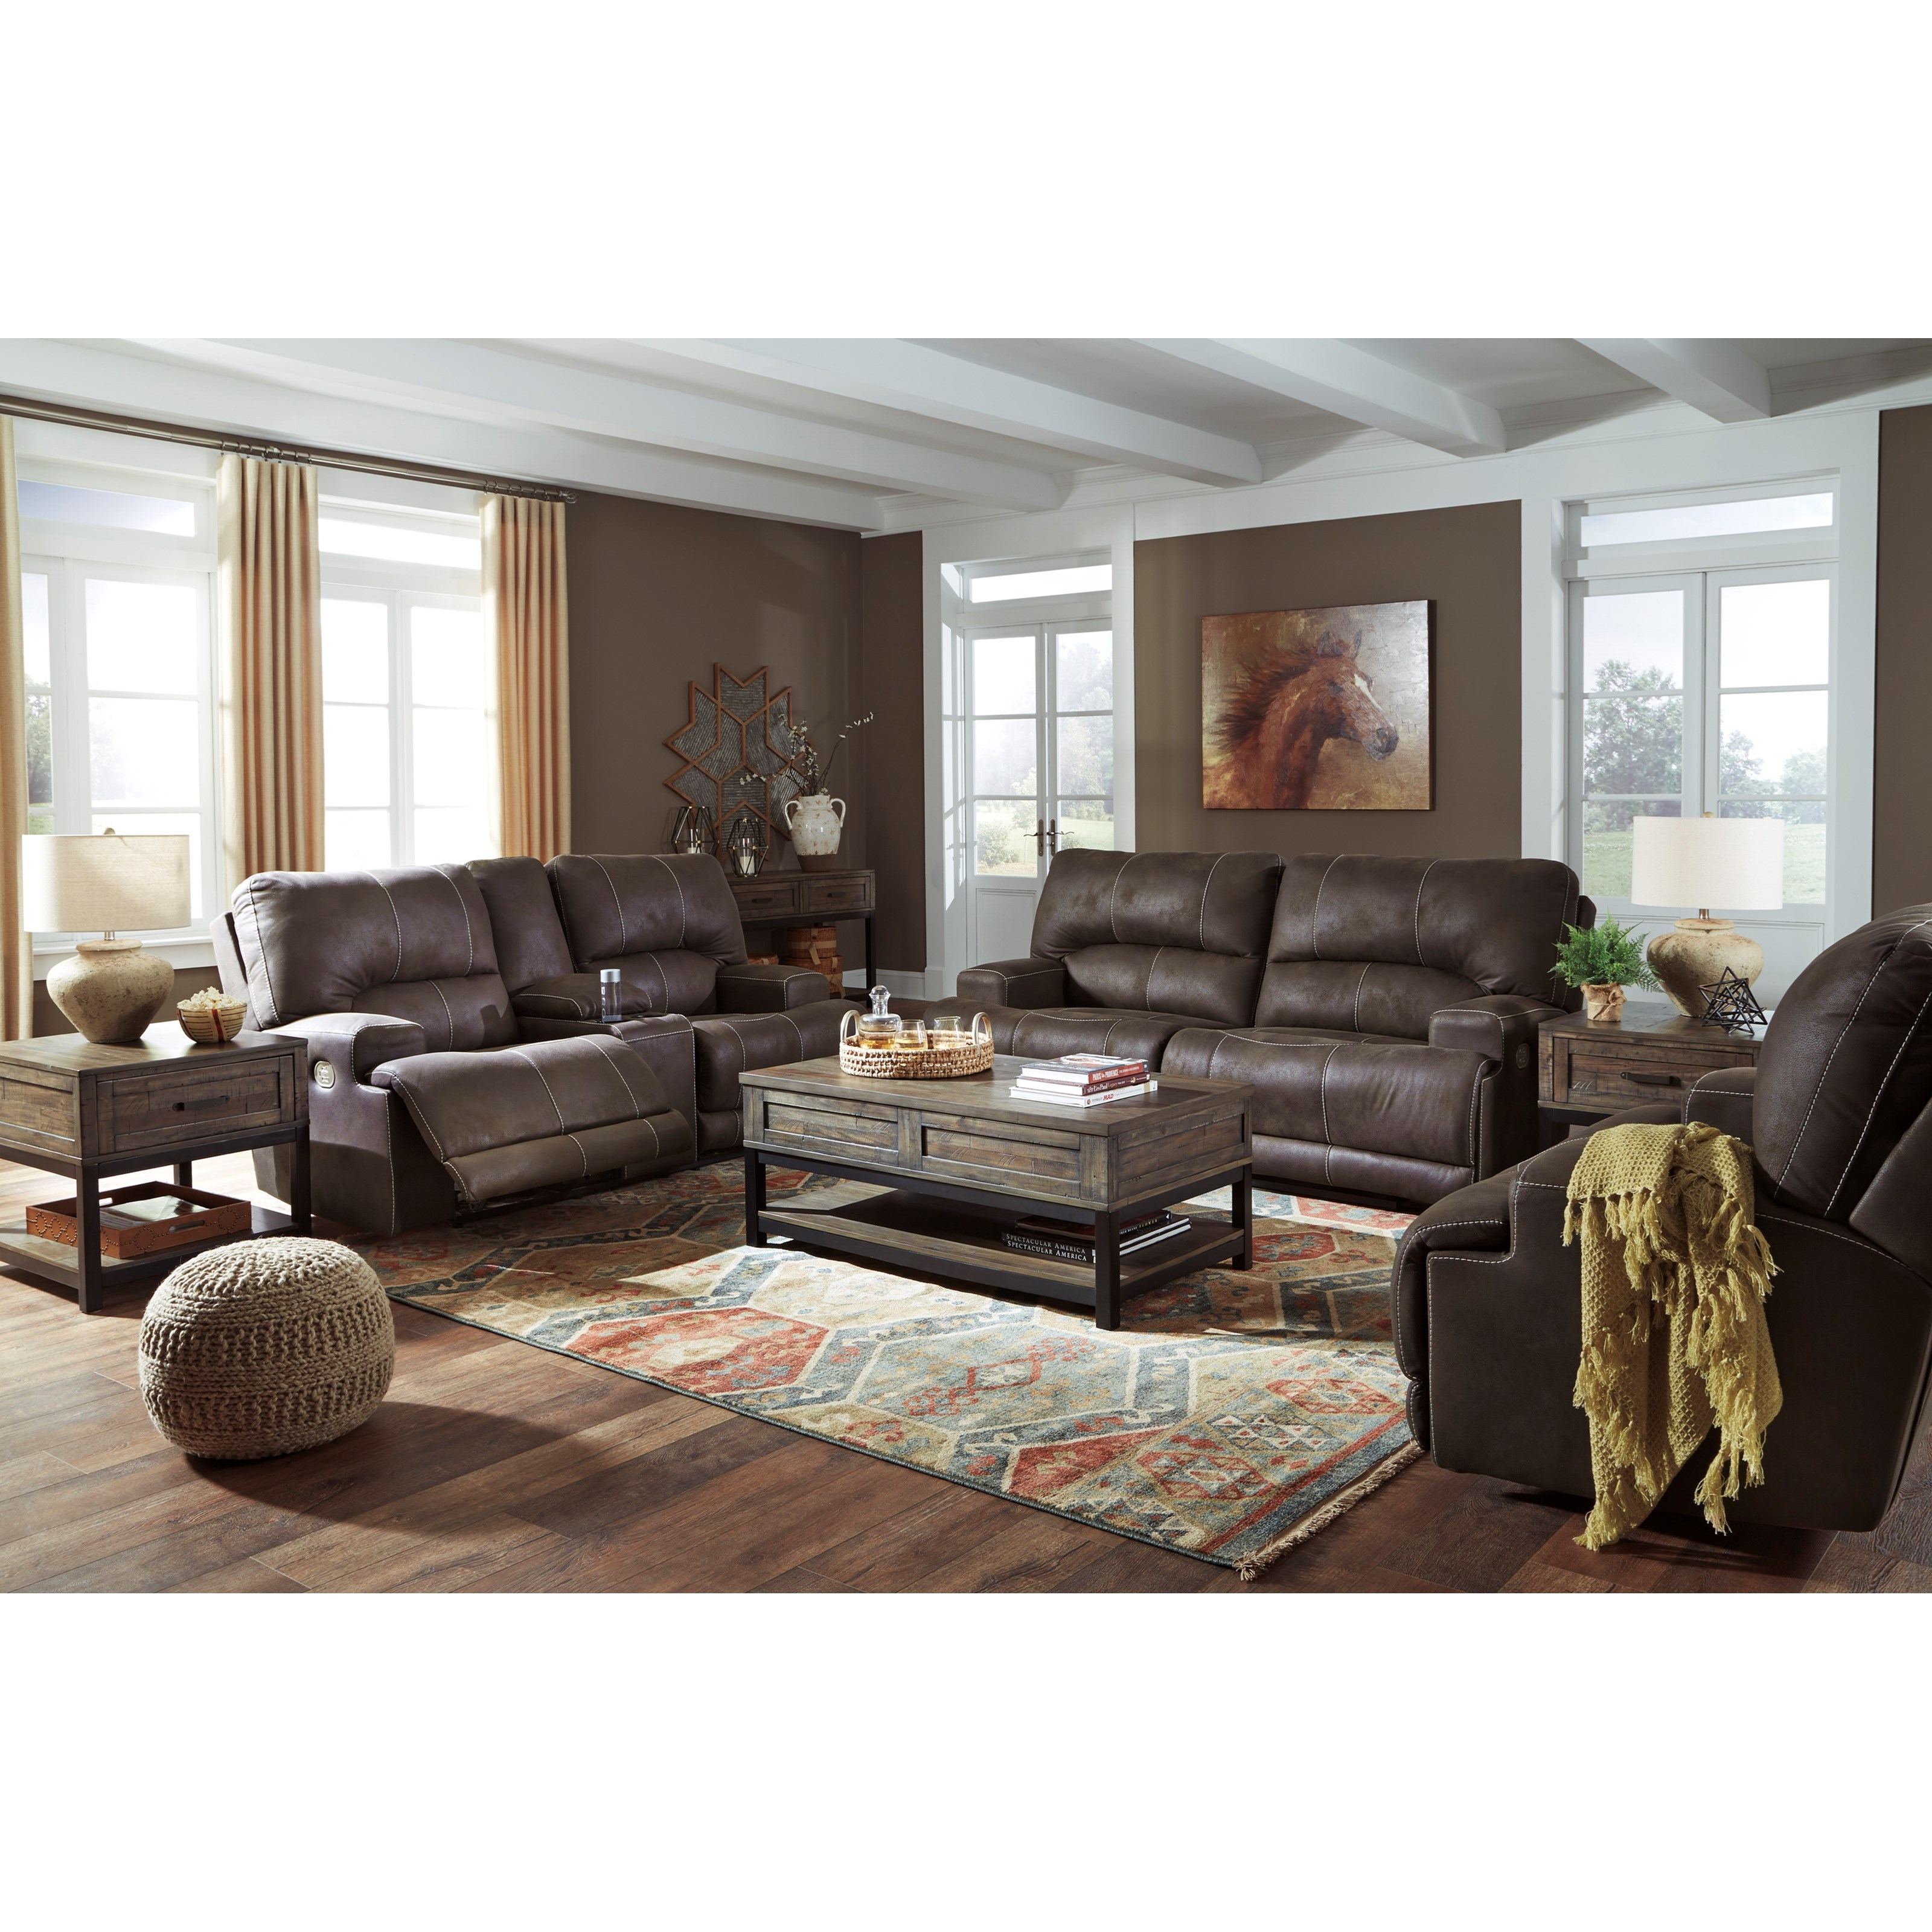 Kitching Power Reclining Living Room Group at Van Hill Furniture